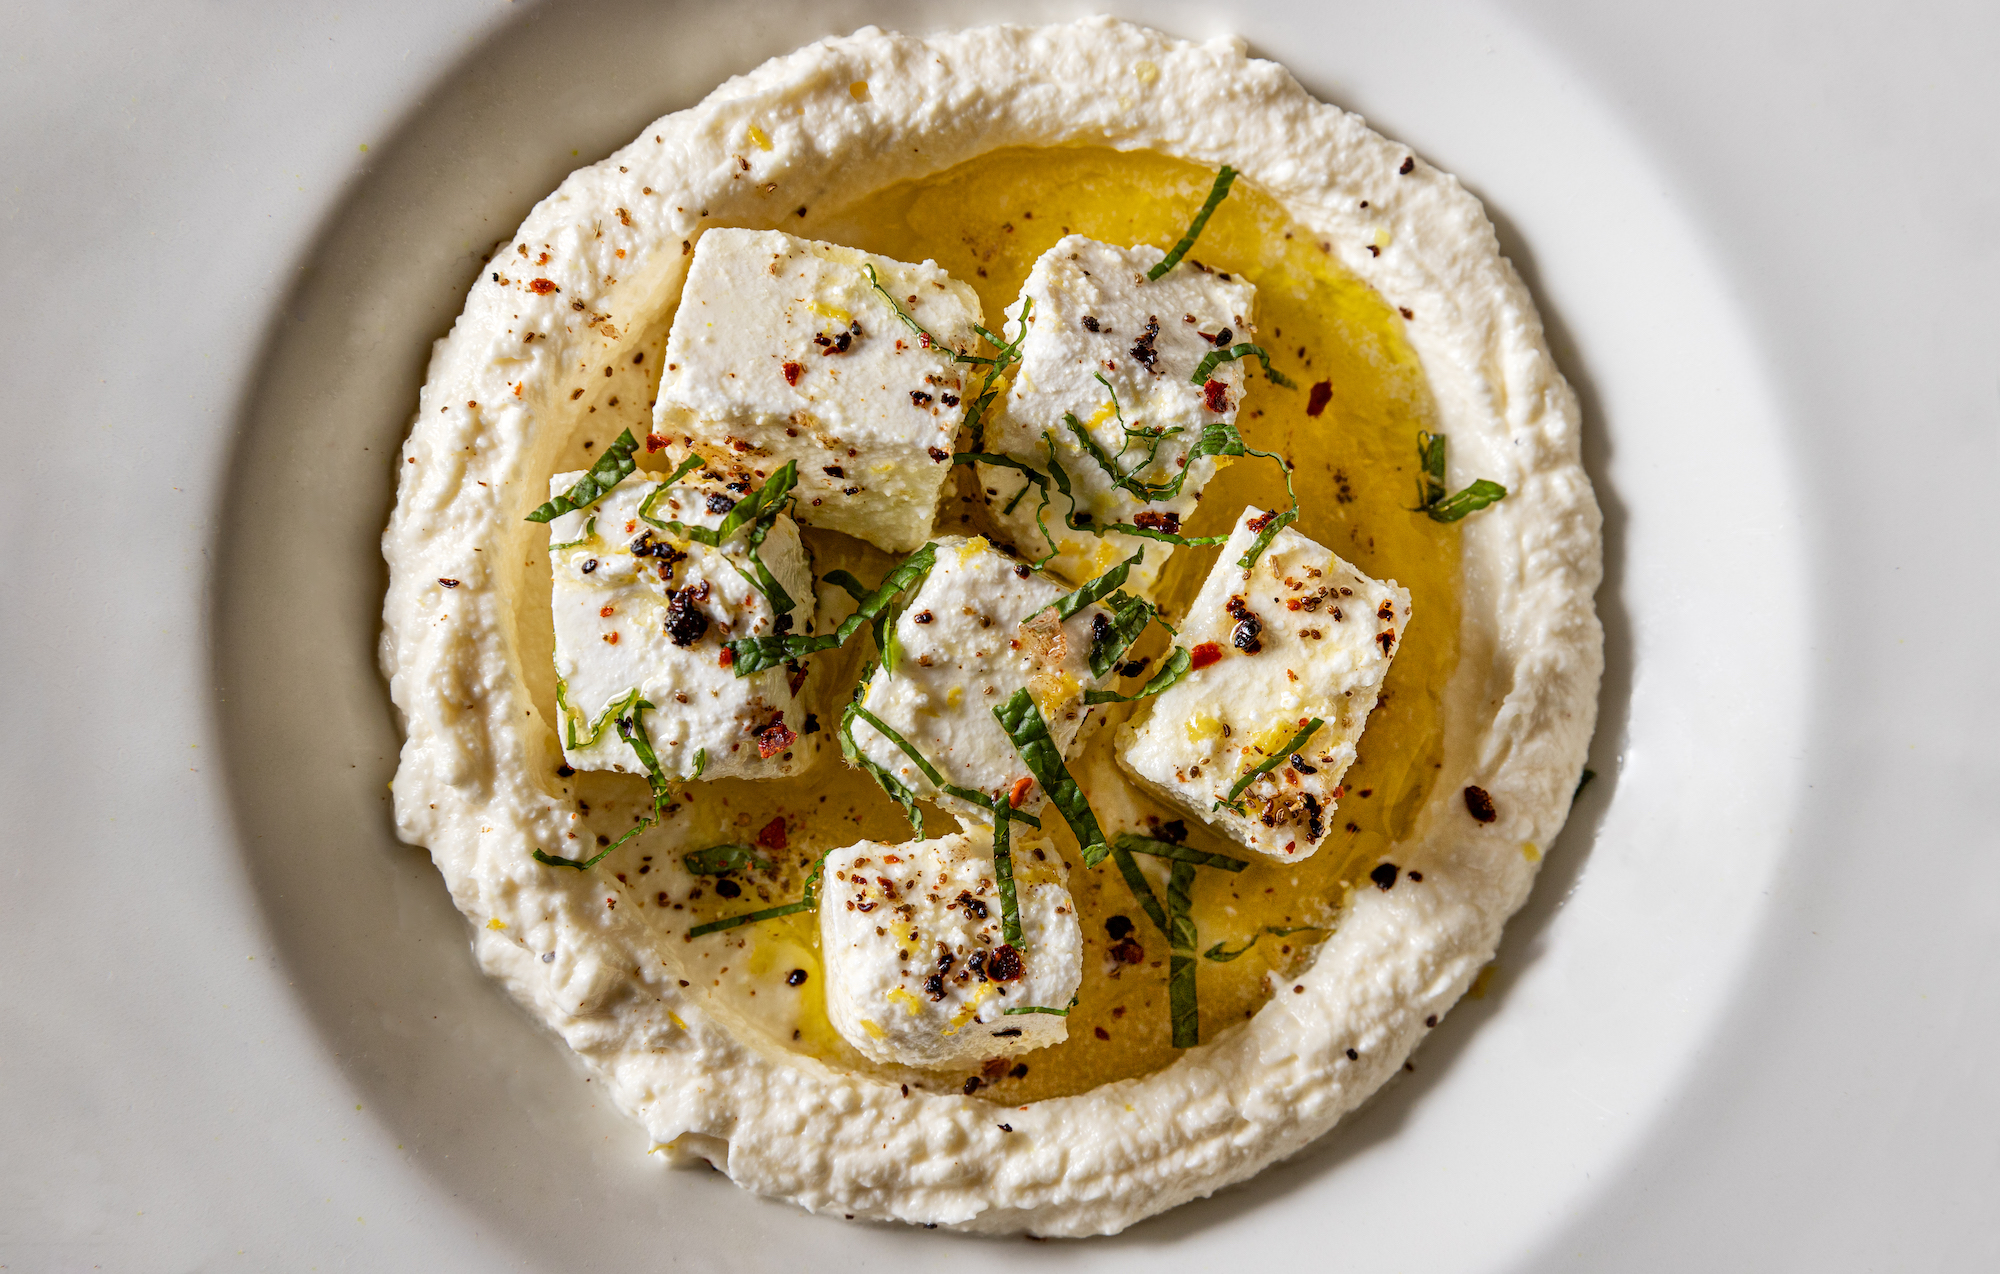 Marinated feta cubes in a blended bowl of more feta from overhead.